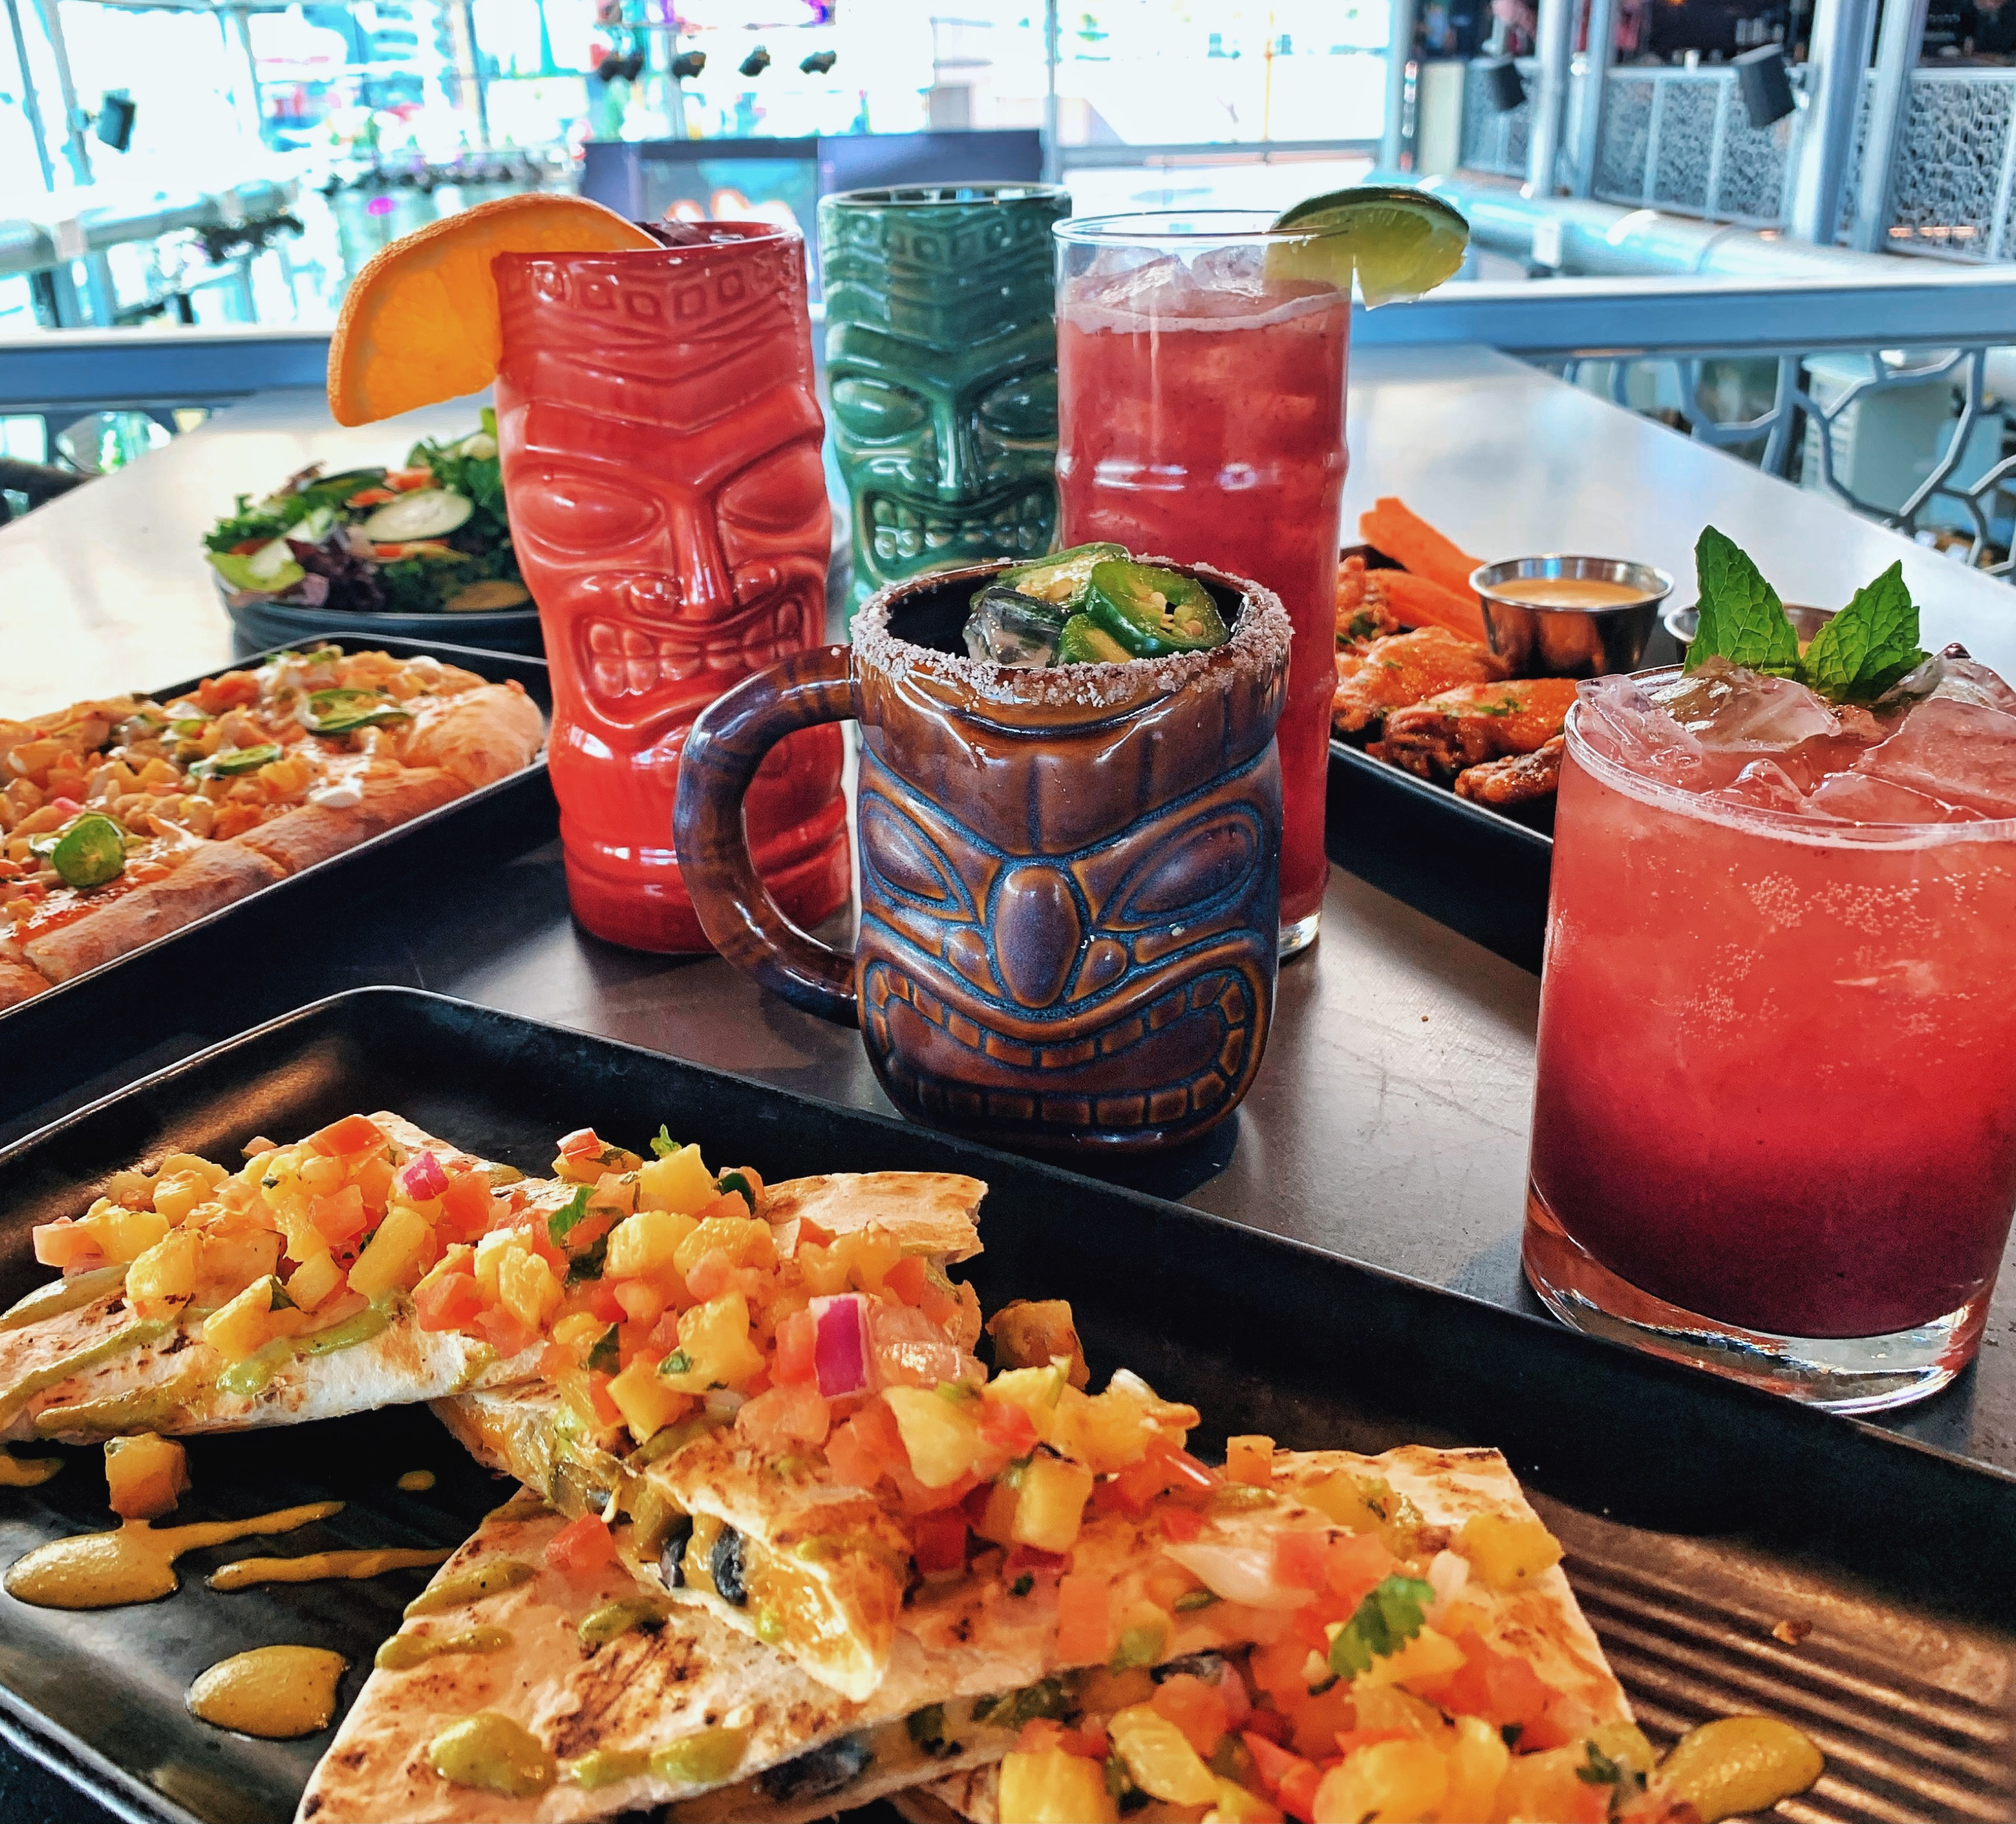 Tiki cocktails and a quesadilla